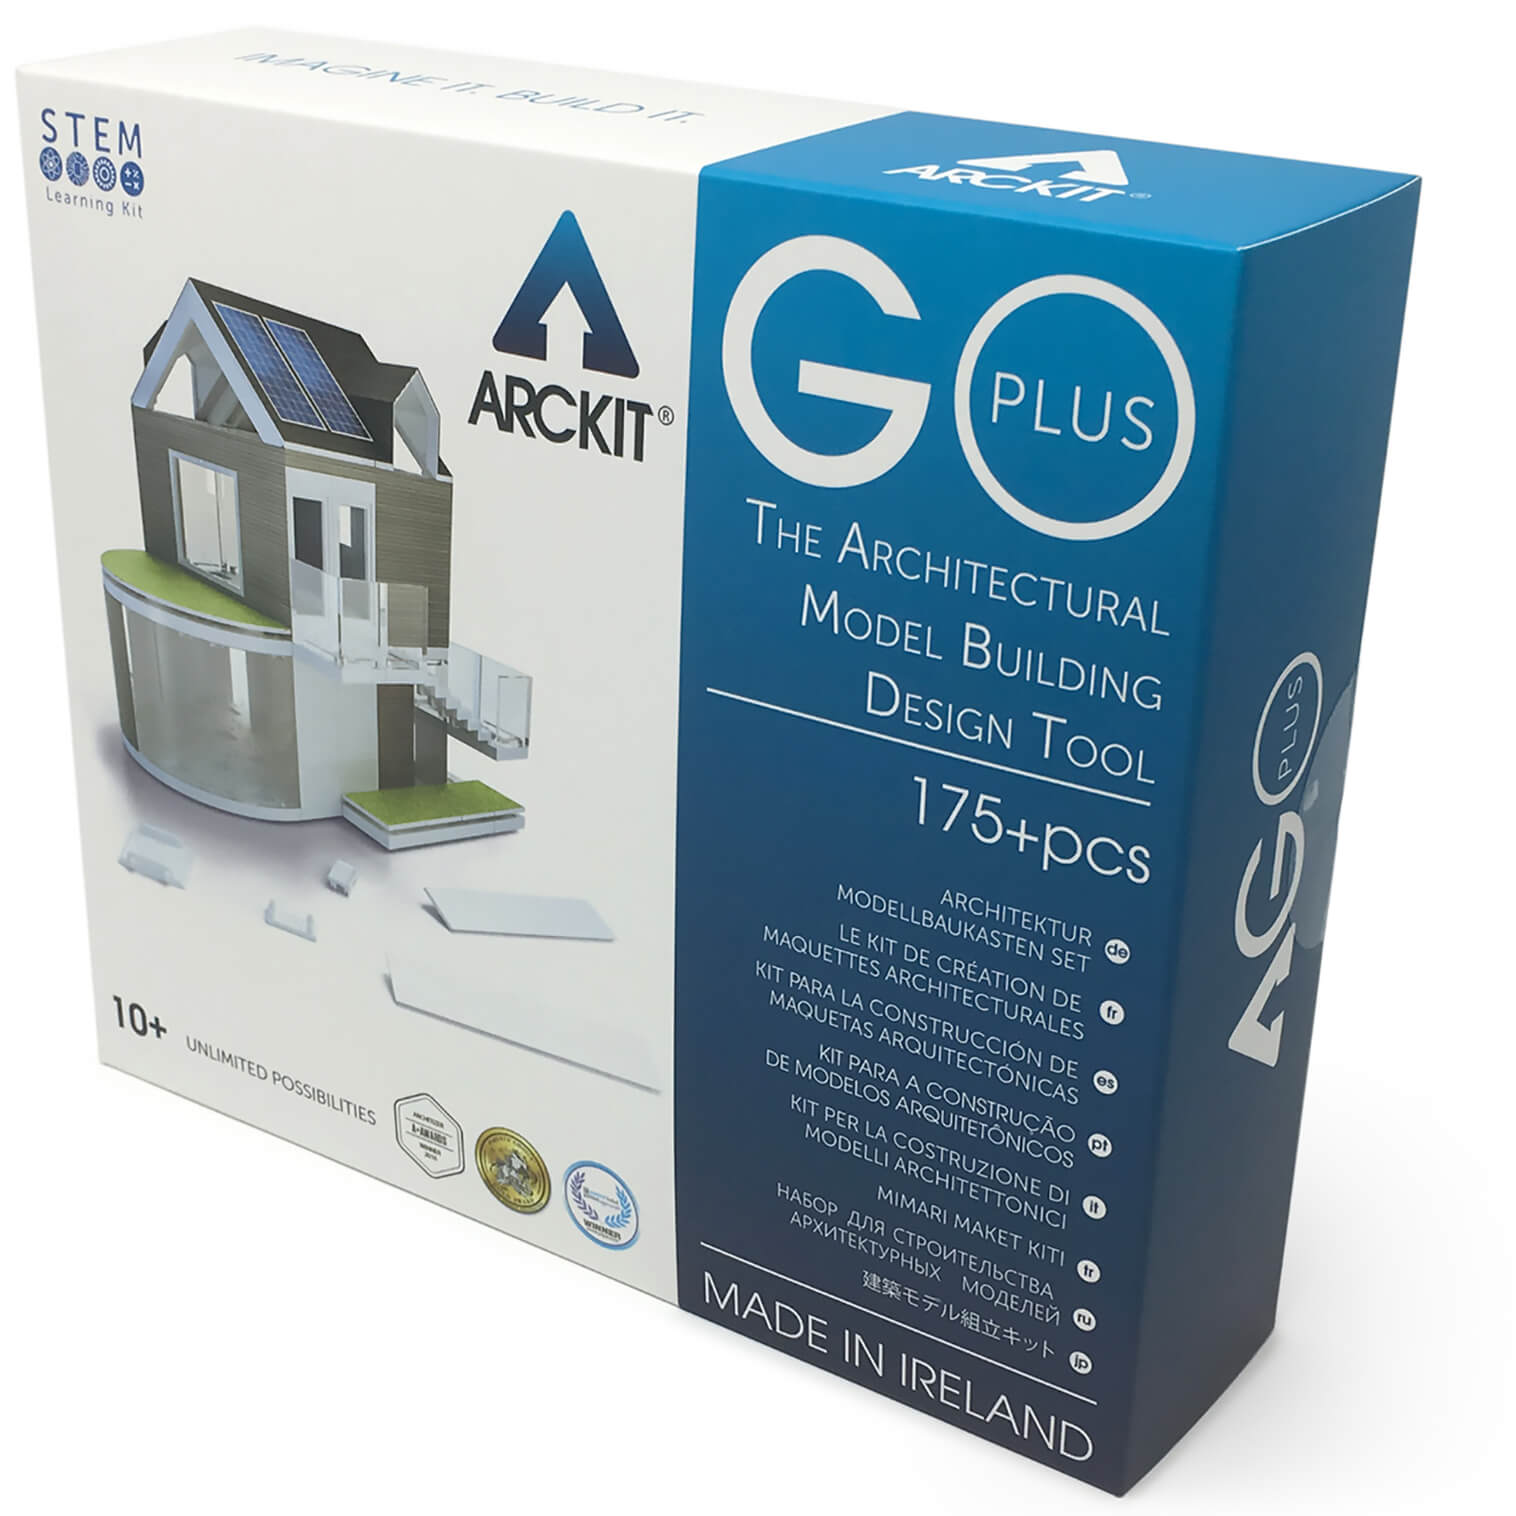 ArcKit Construction Set - GO Plus